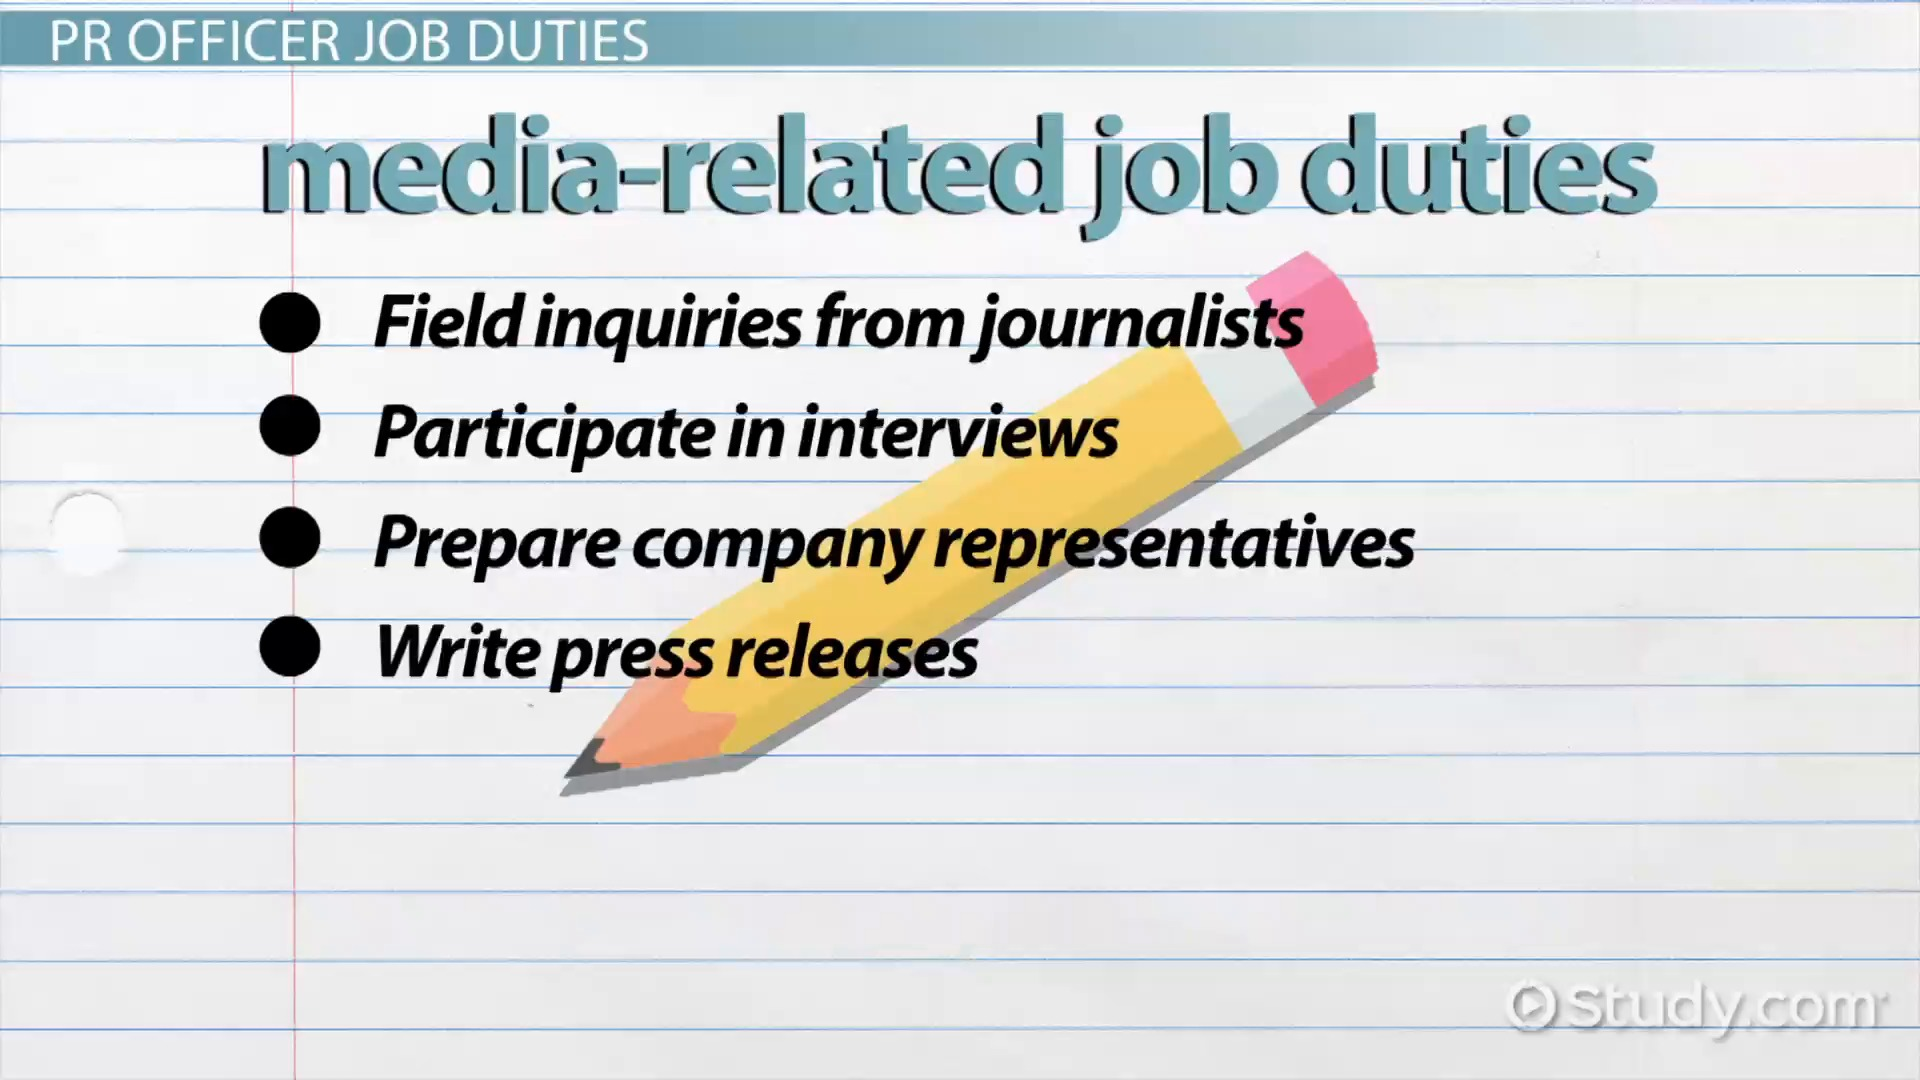 ... Public Relations Officer Job Duties And Requirements ...